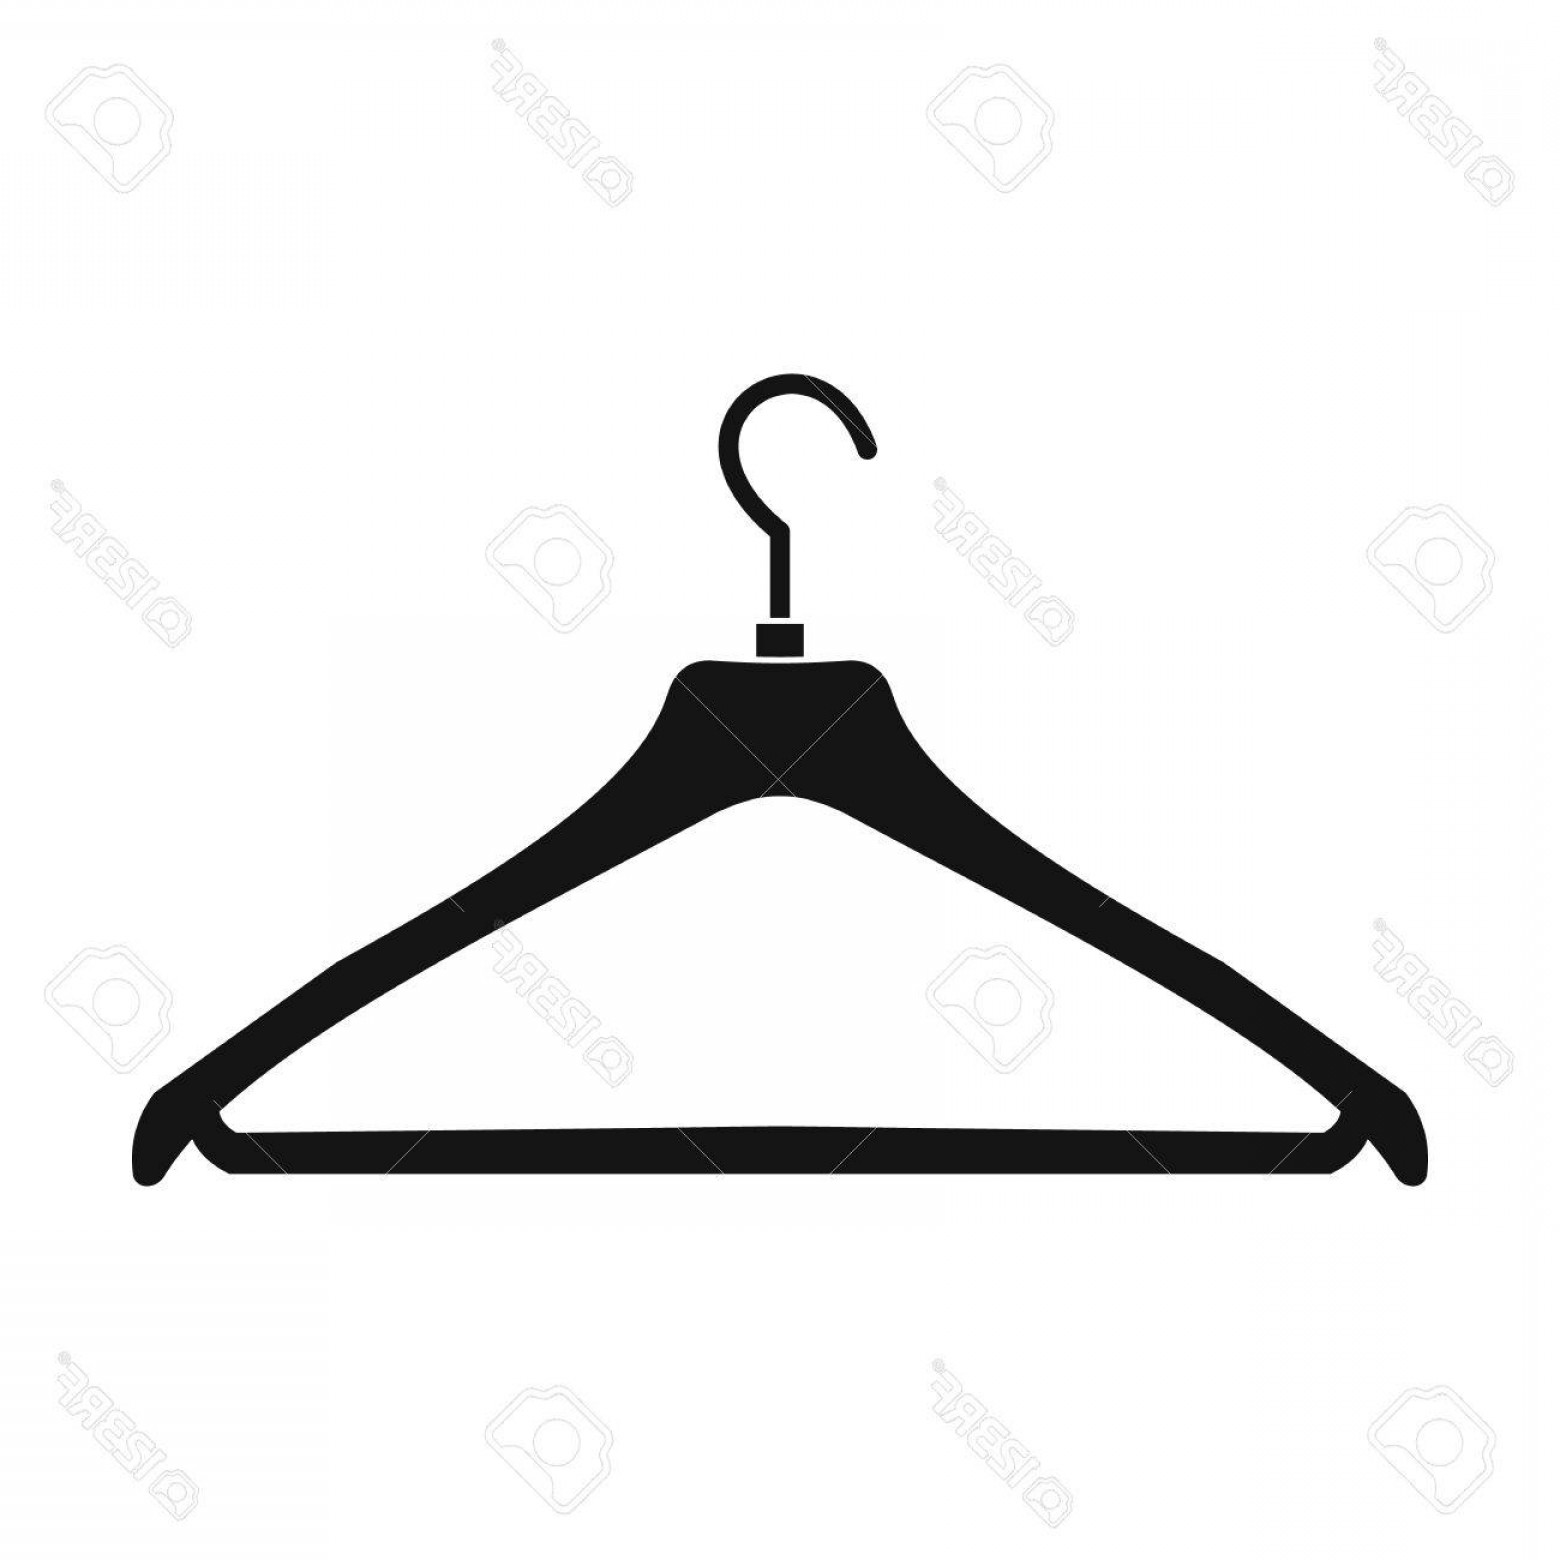 Shirt Hanger Icon Vector: Photostock Vector Coat Hanger Black Simple Icon Isolated On White Background